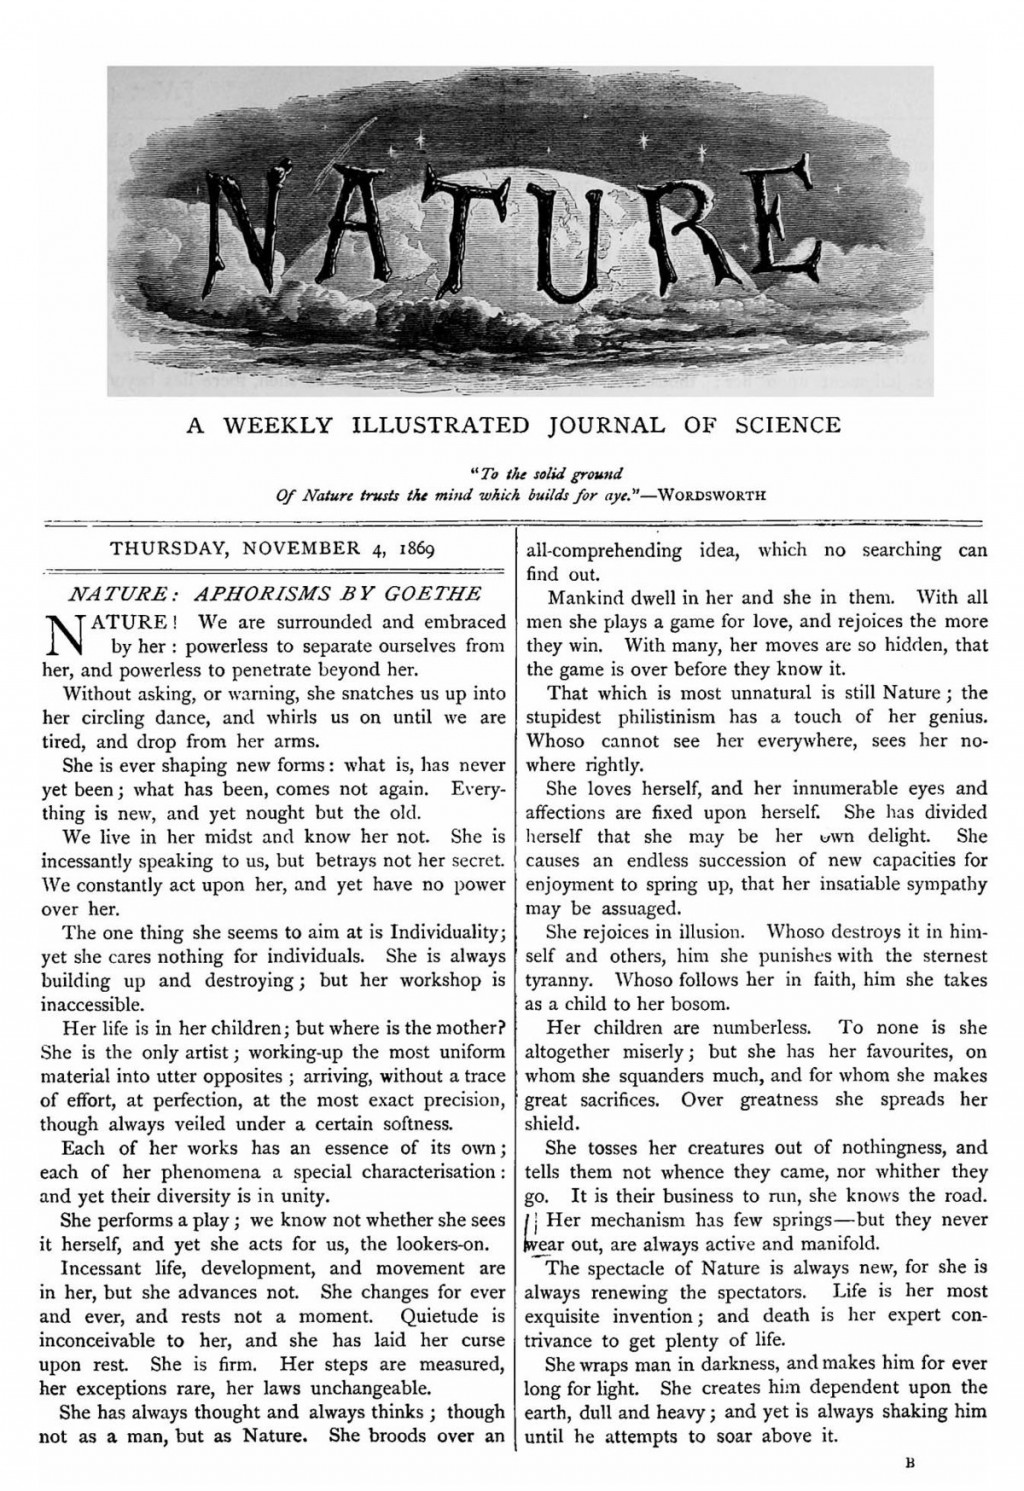 005 Best Journals To Publish Research Papers In Computer Science Paper 1200px Nature Cover2c November 42c 1869 Astounding Large